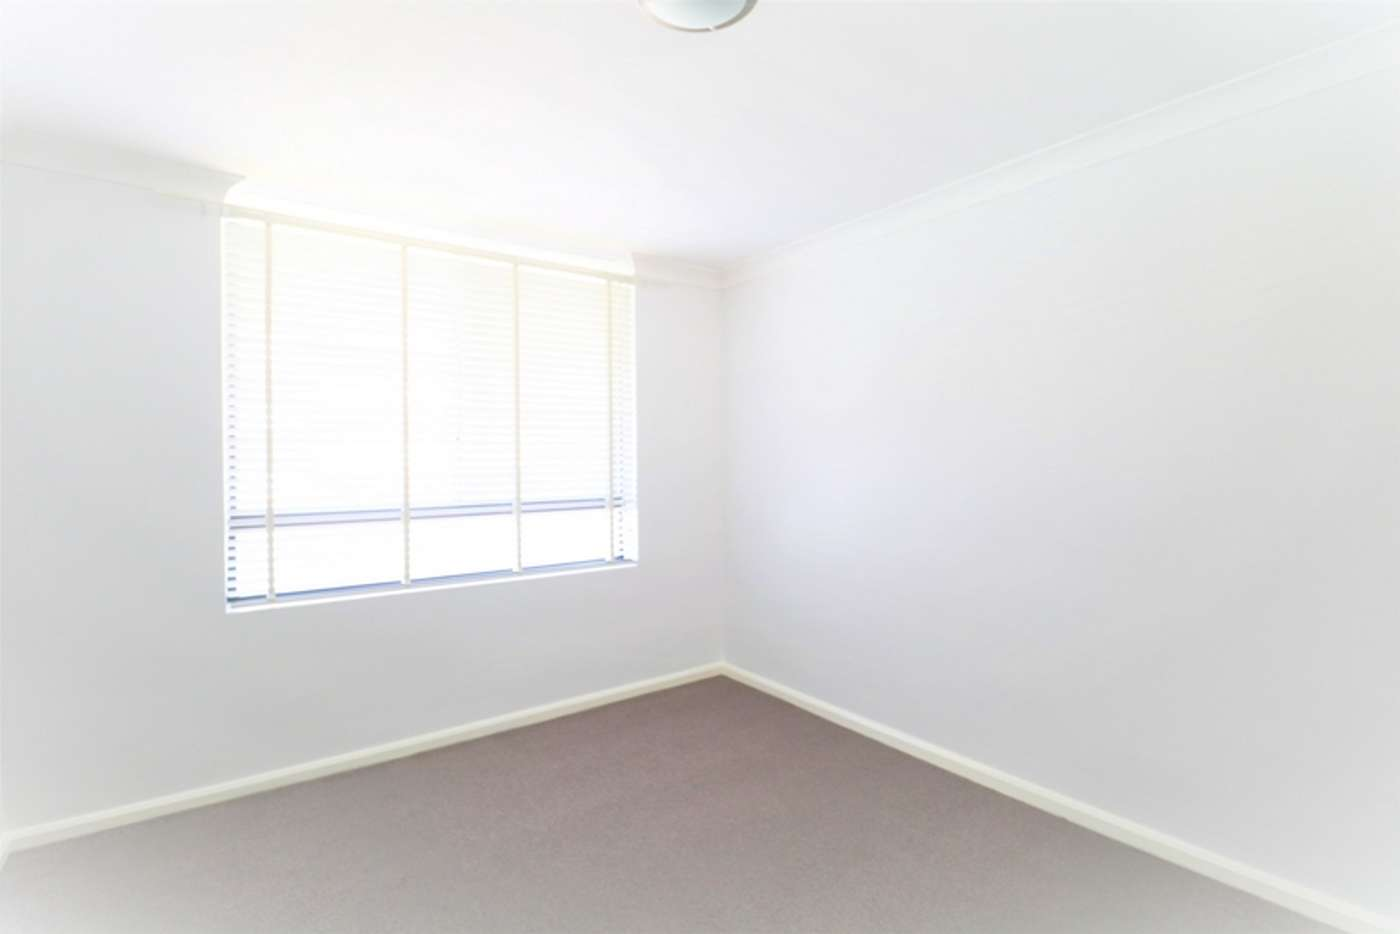 Sixth view of Homely apartment listing, 32/62 Grosvenor Crescent, Summer Hill NSW 2130